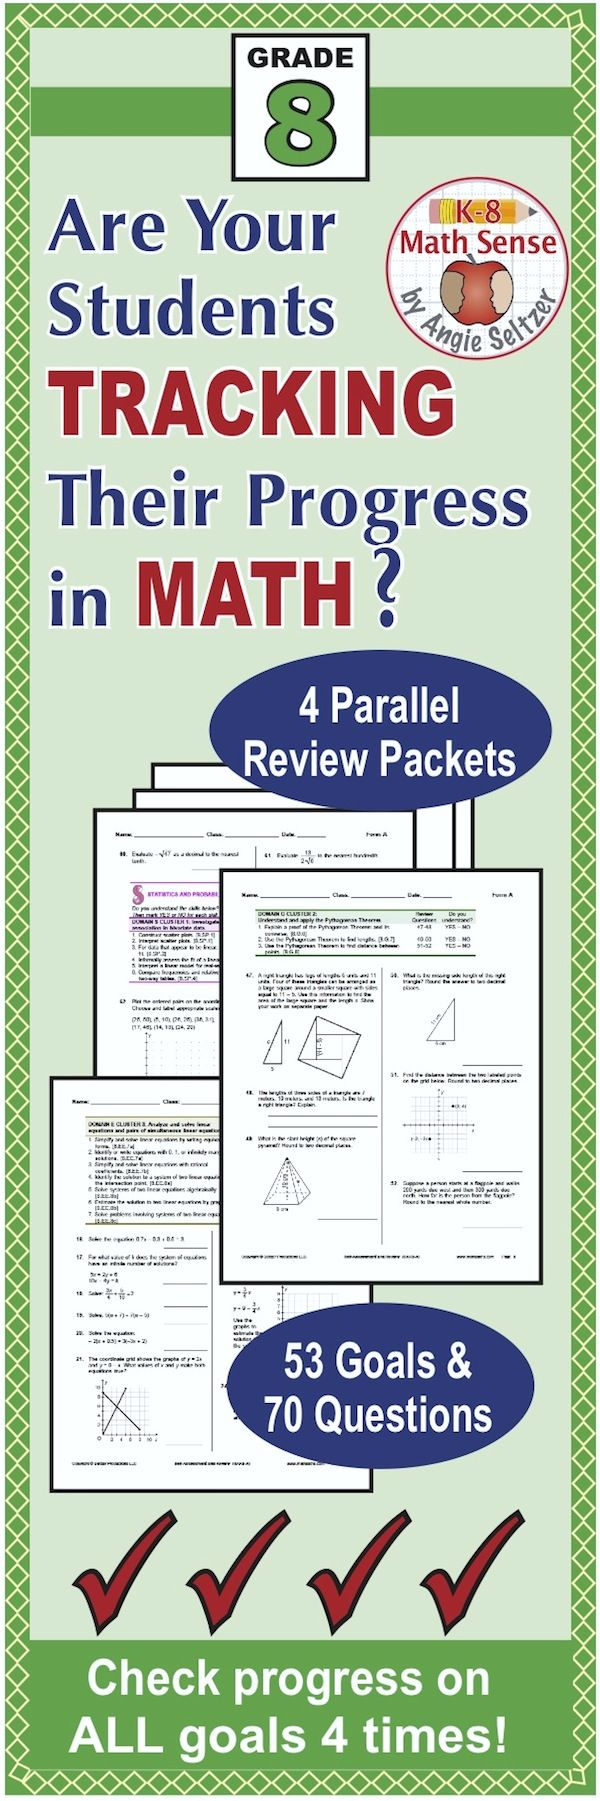 This bundle includes four 70-question comprehensive review packets aligned to Grade 8 goals. The four forms (A-D) are parallel and can be used as pre- and post-tests, review, or quick reference. Questions are grouped by domain and aligned to a list of Common Core goals for self-assessment. The Preview shows Form A. Take a look! ~by Angie Seltzer